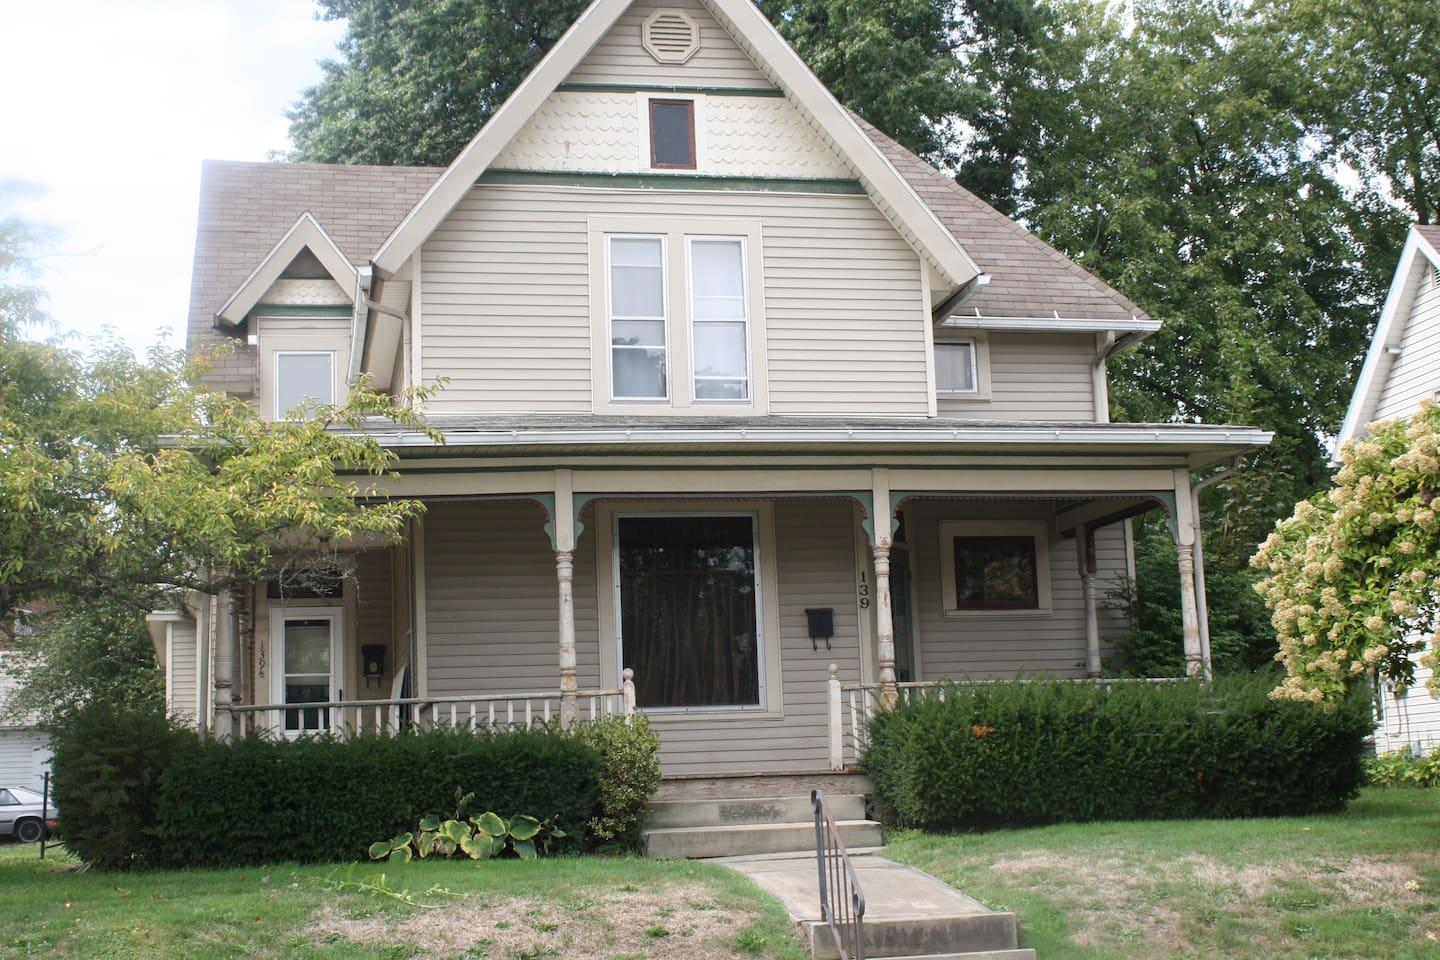 139 Park Ave, Coshocton, OH